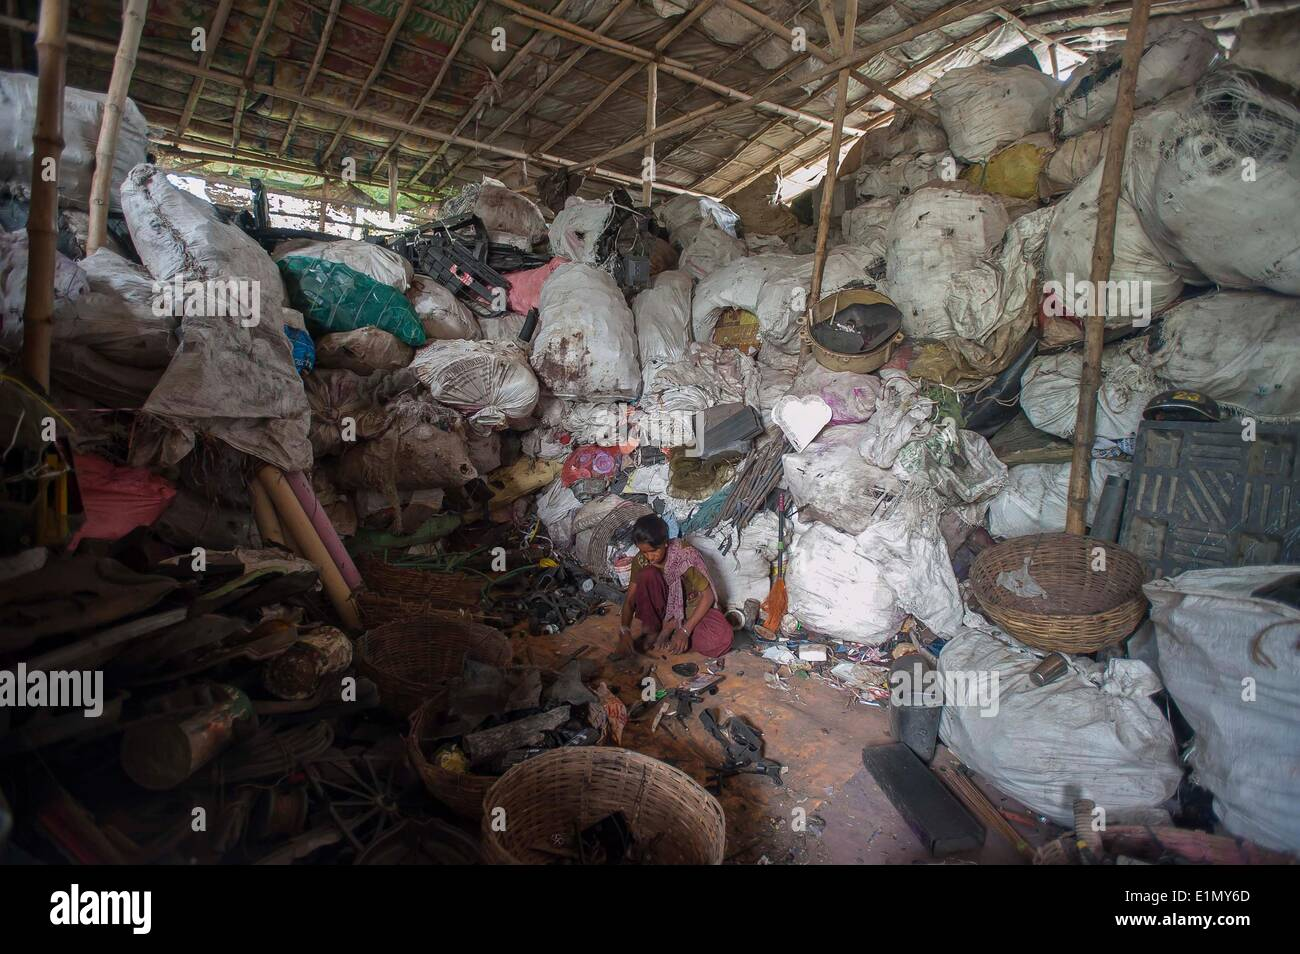 Calcutta, Indian state West Bengal. 6th June, 2014. An Indian labor sorts recyclable materials near a dumping ground in Calcutta, capital of eastern Indian state West Bengal, June 6, 2014. According to National Physical Laboratory report 2013, garbage pressure in Calcutta of 16.5 tonnes per square kilometer, is the highest in the country. © Tumpa Mondal/Xinhua/Alamy Live News - Stock Image